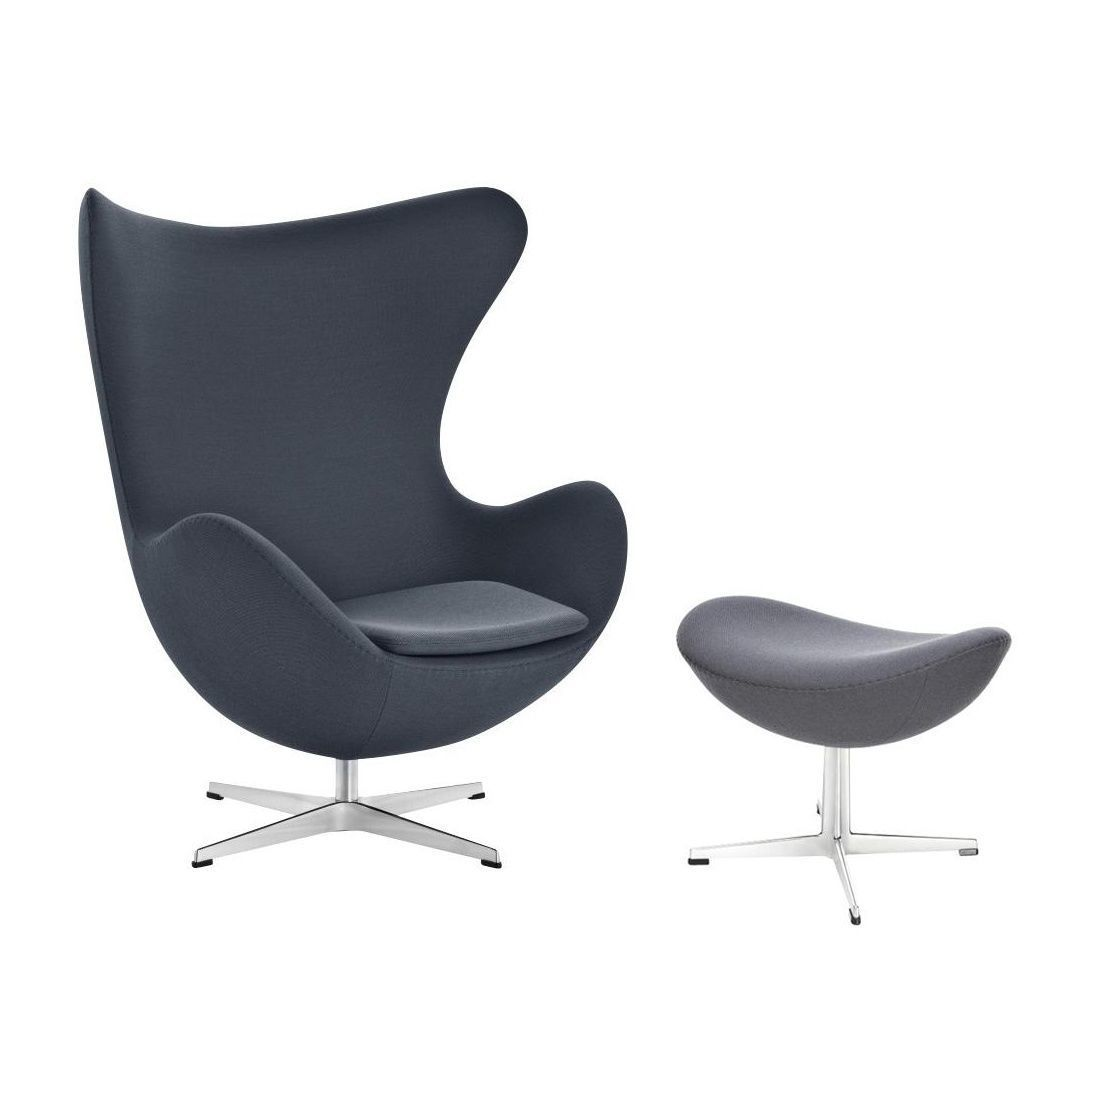 aktion egg chair/das ei sessel + hocker stoff | fritz hansen, Hause deko